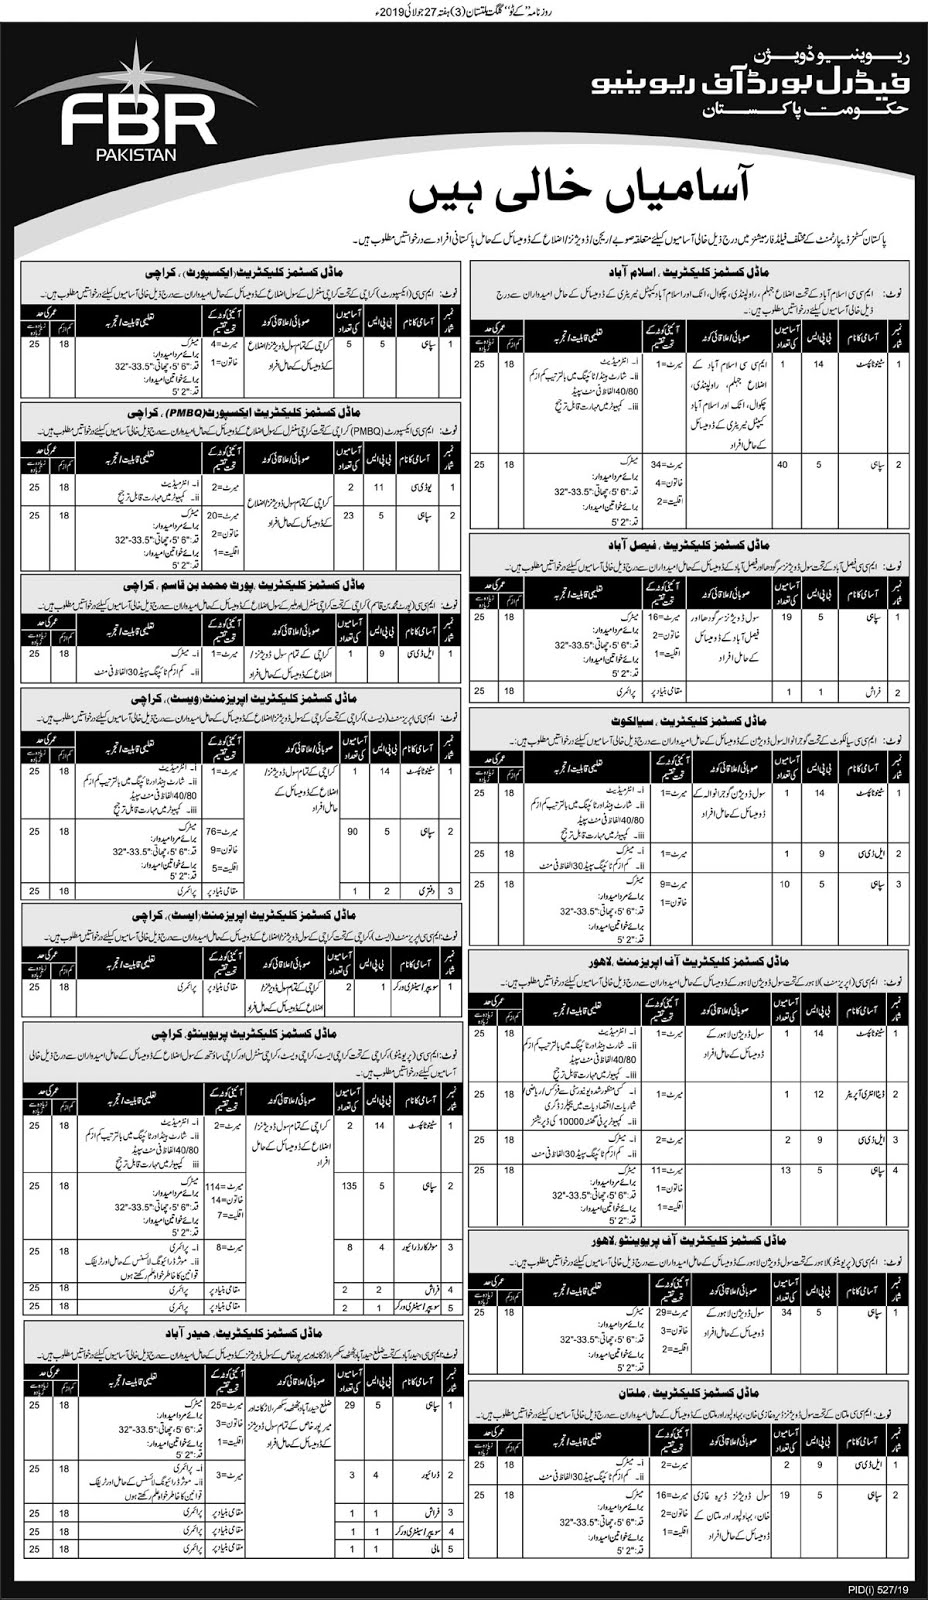 FBR Jobs 2019 Federal Board of Revenue Jobs 2019